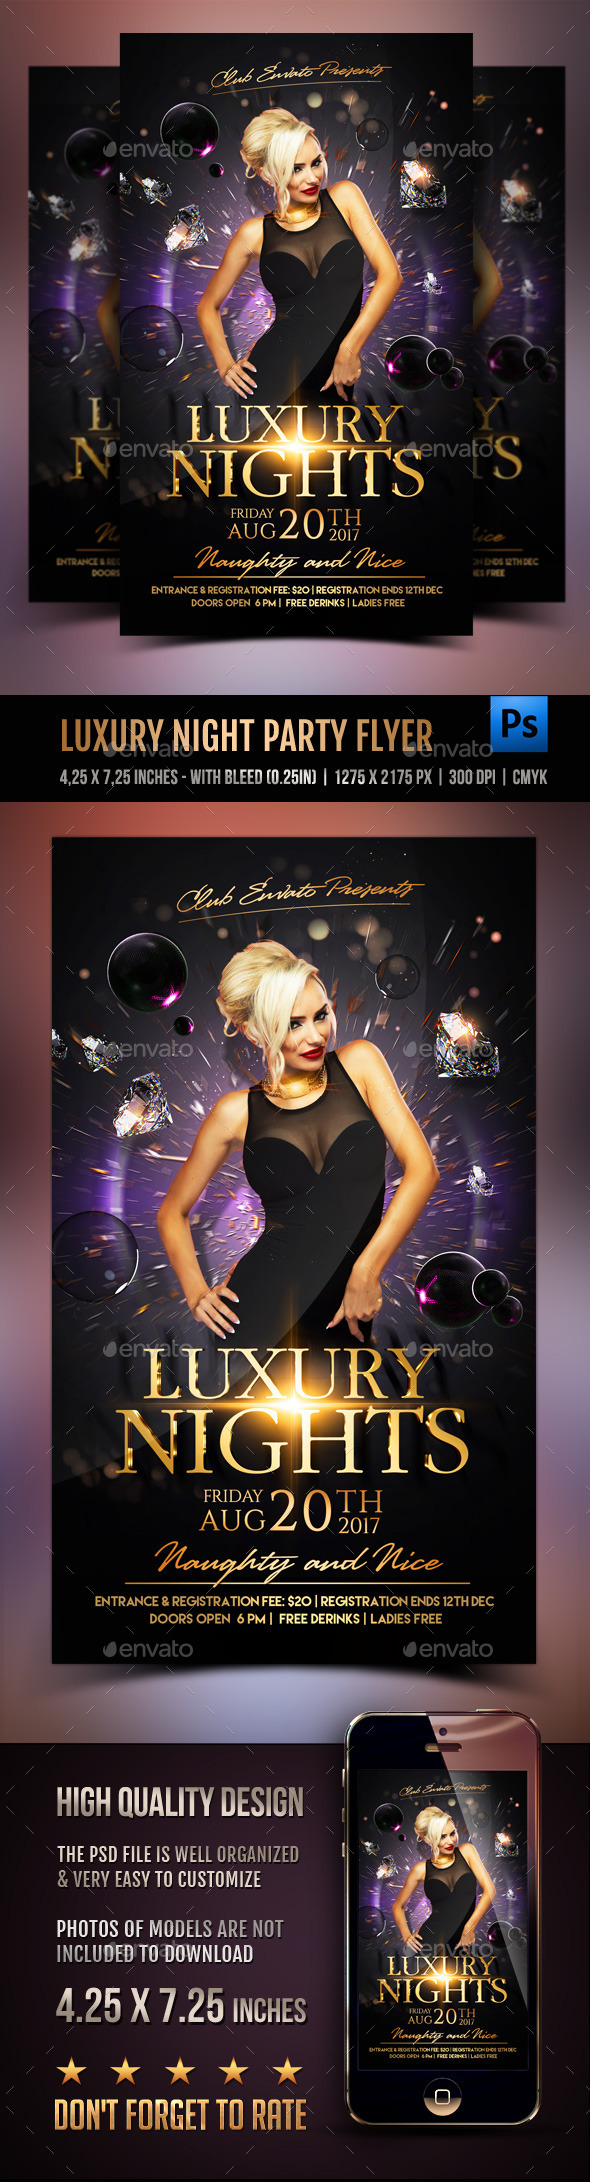 Luxury Nights Party Flyer - Clubs & Parties Events